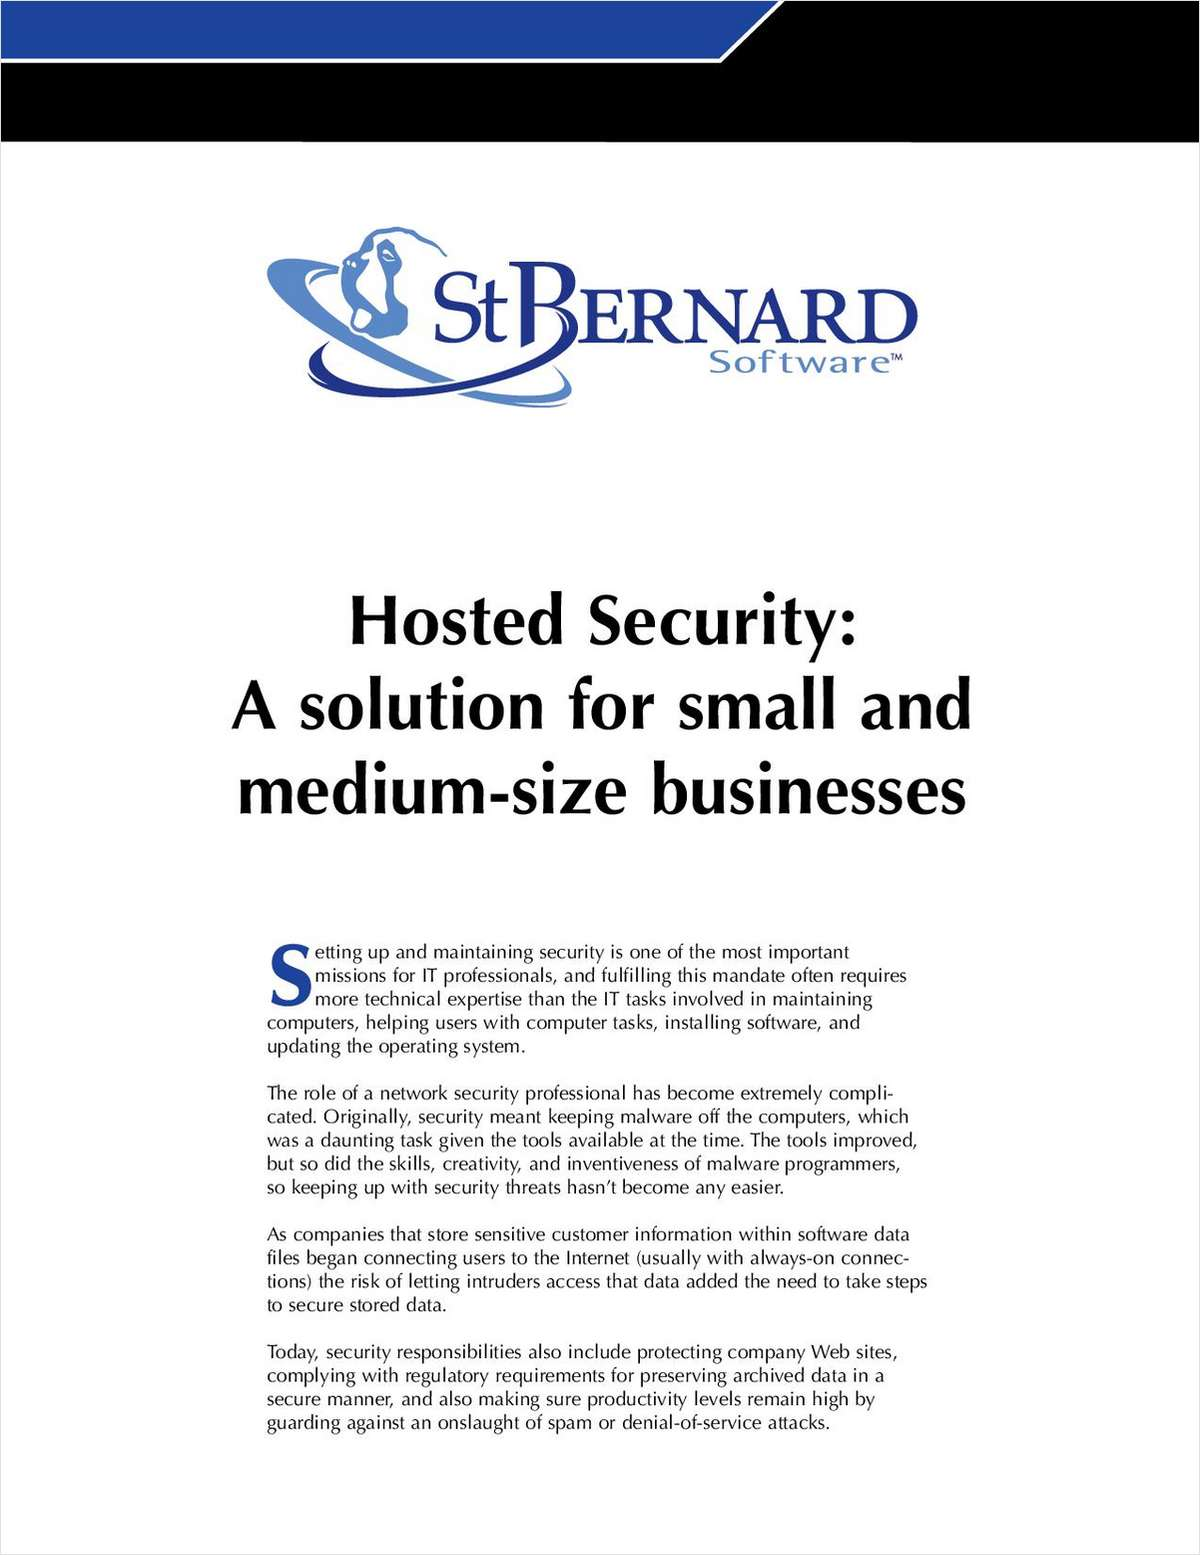 Hosted Security for Small and Medium-Sized Businesses